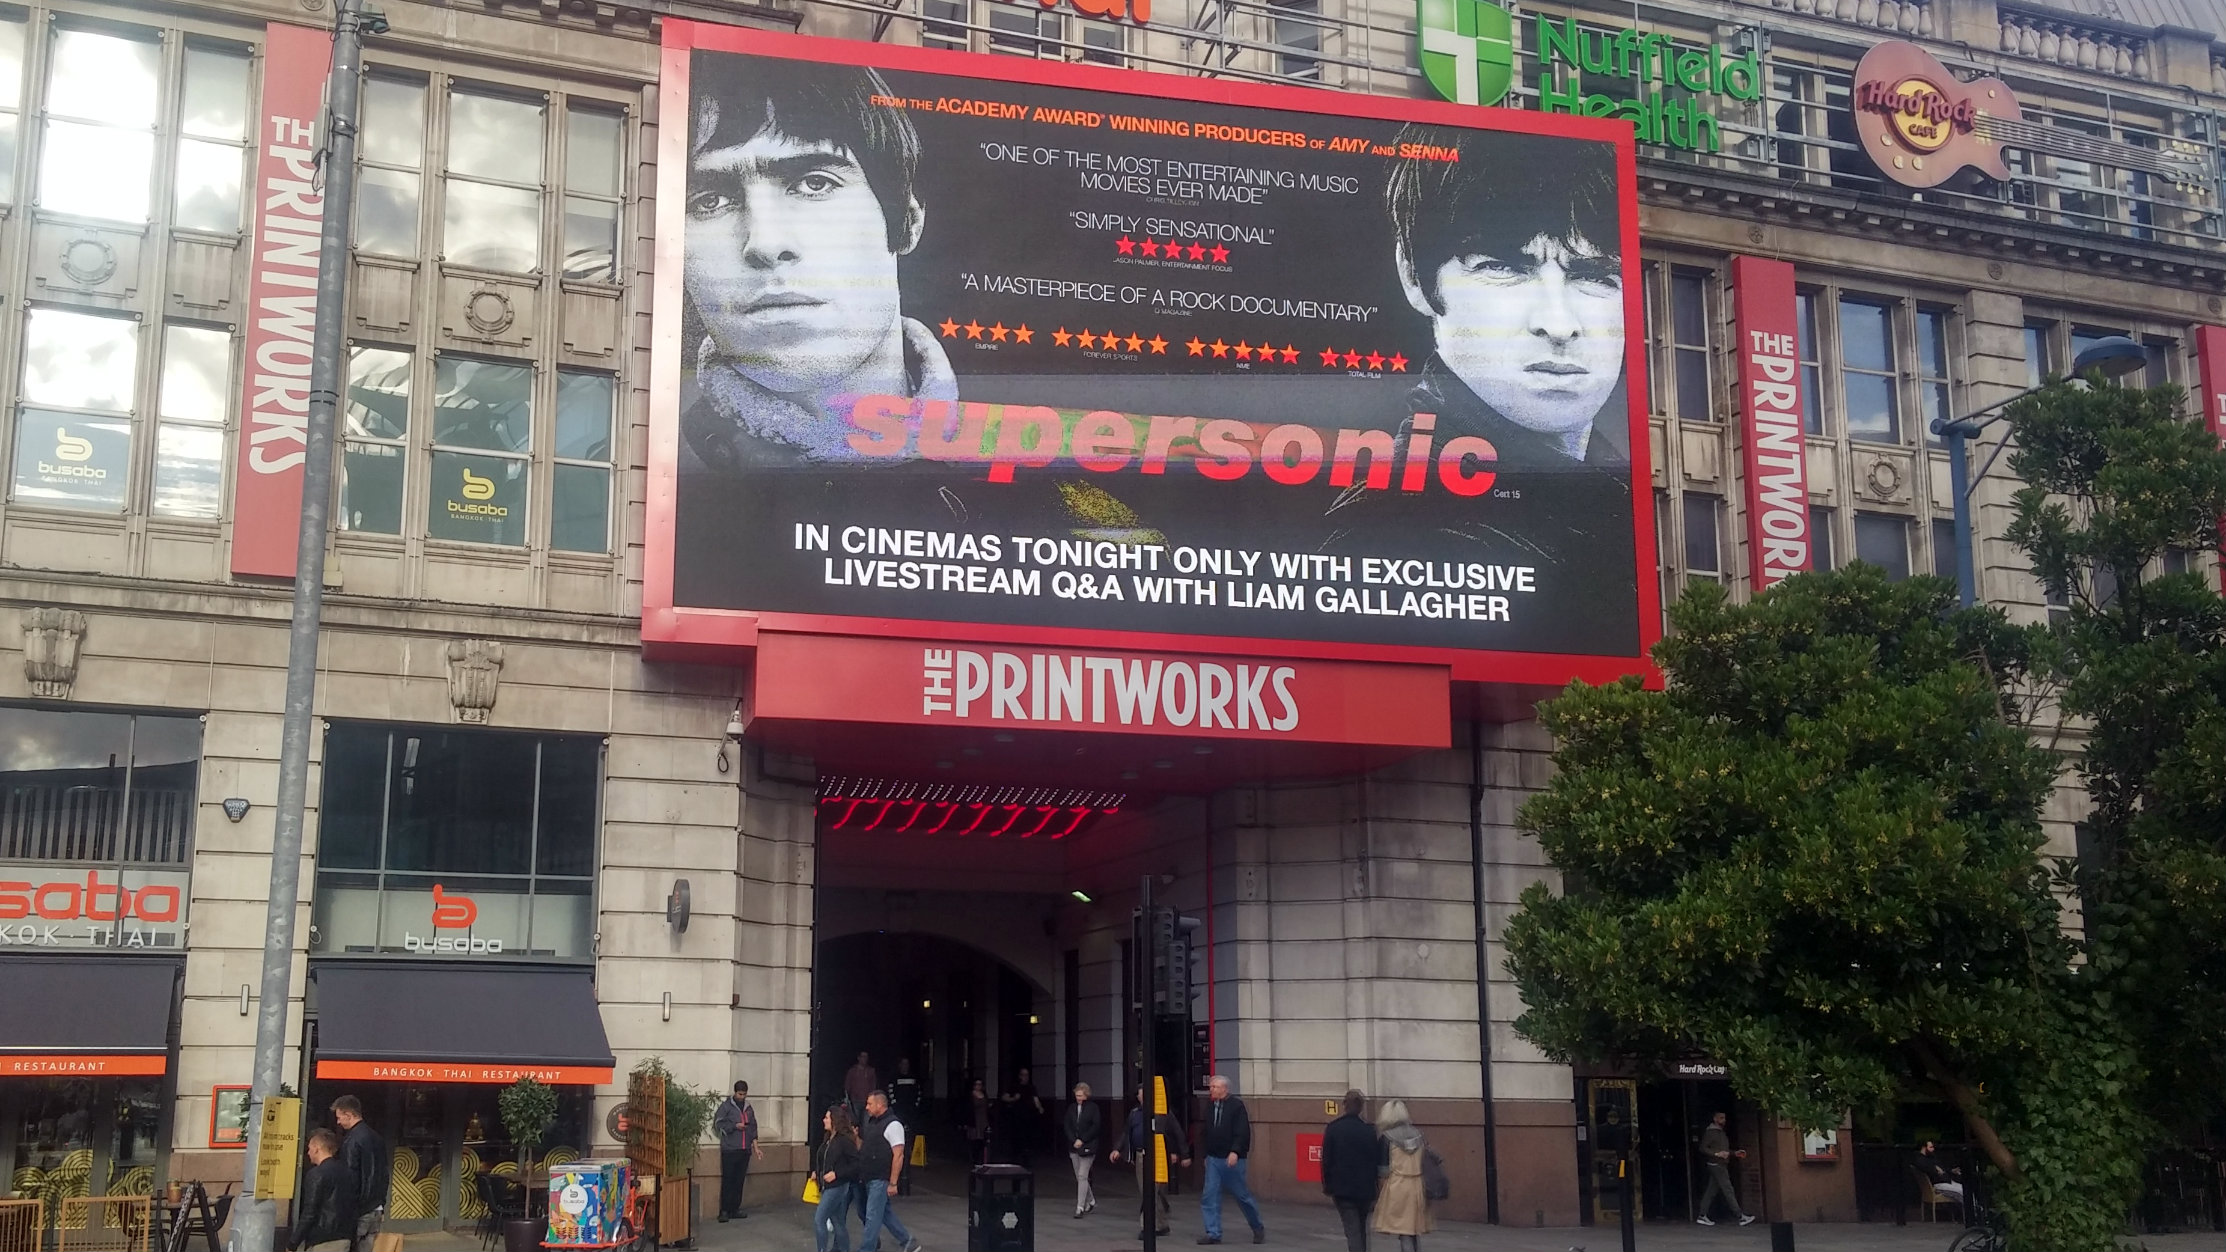 Odeon Printworks before the premiere of Supersonic, 2nd October 2016.